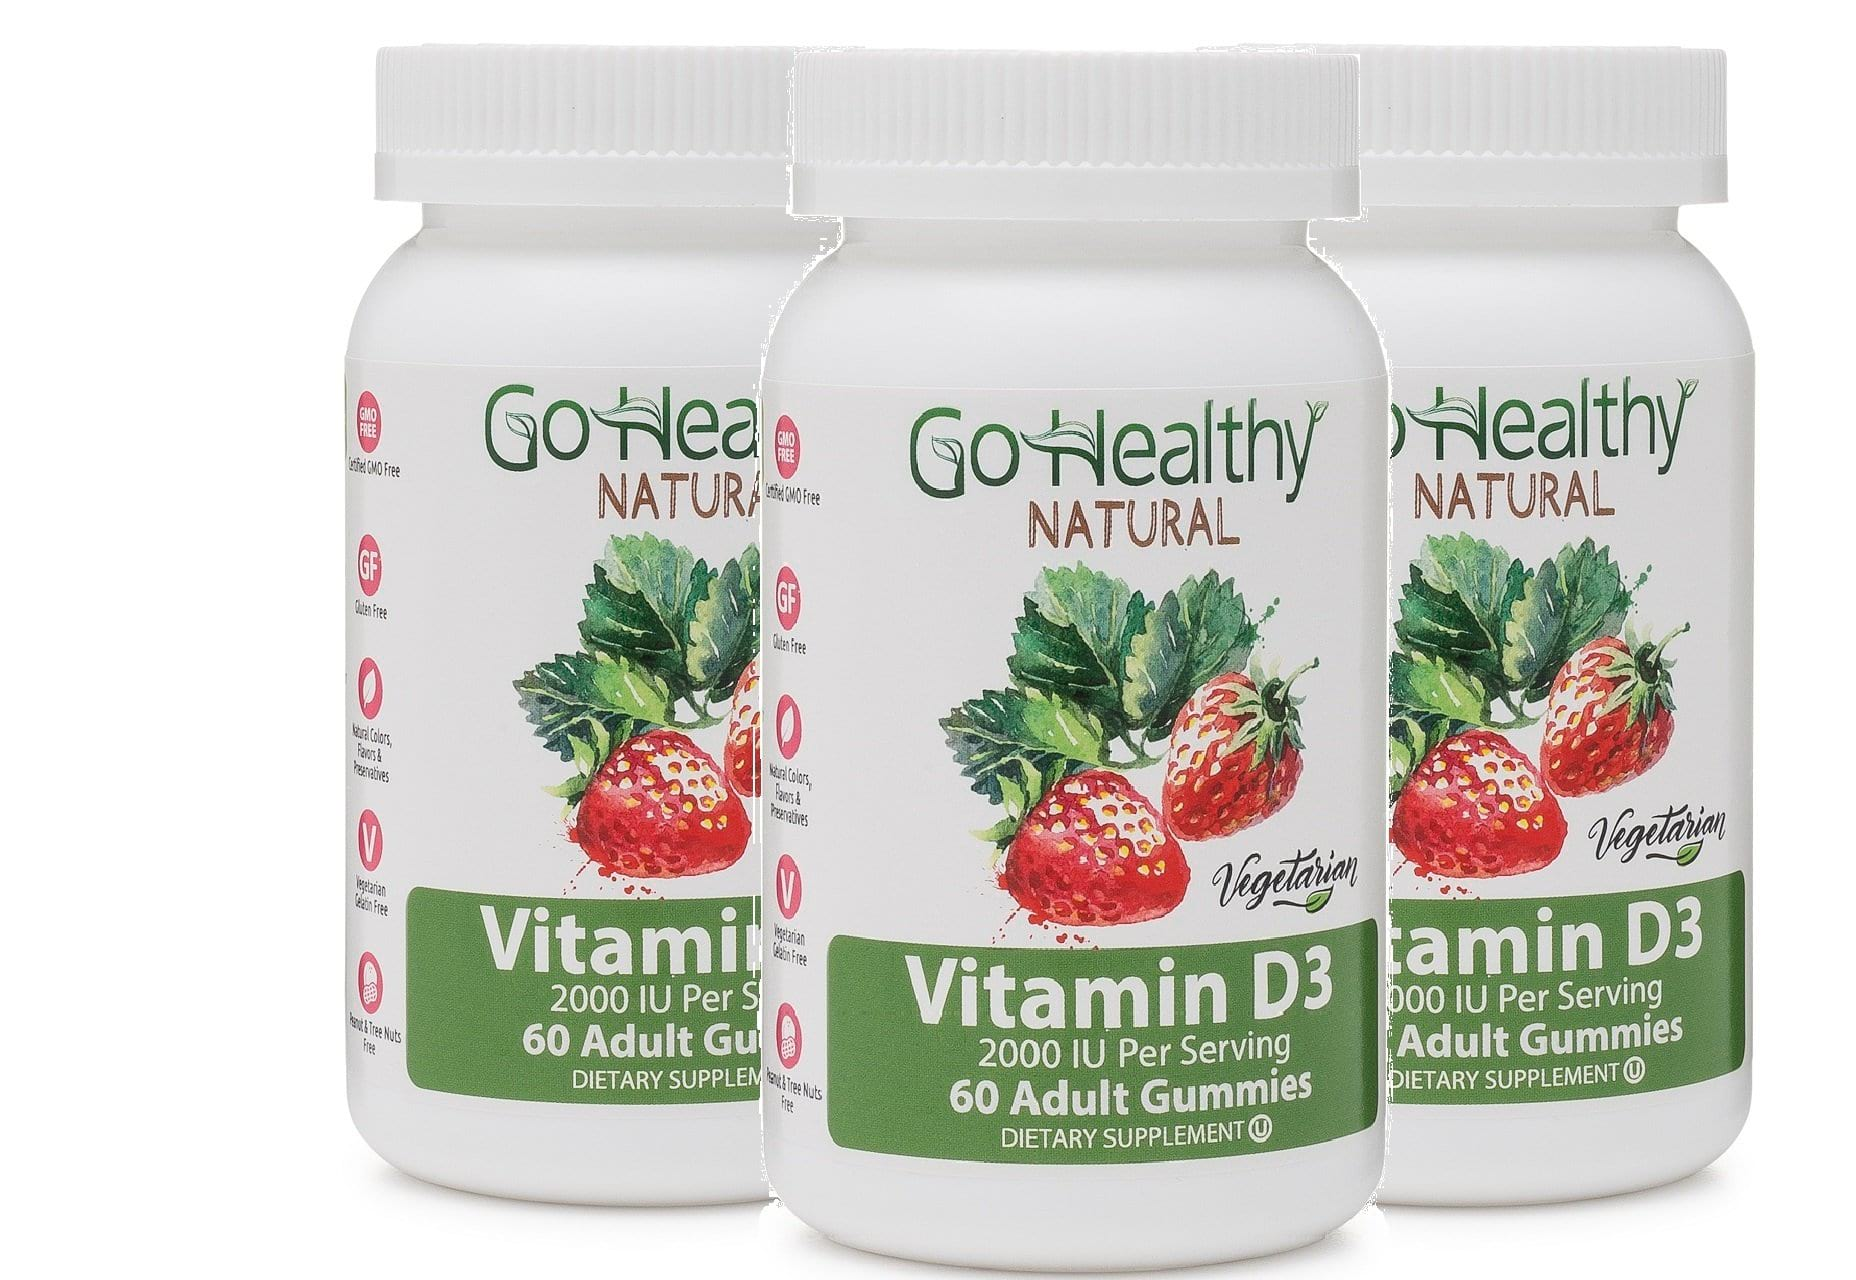 Vitamin D3 Gummies for Women and Men- Vegetarian - 2000 IU Per Serving- 3 Bottles (180 count)-60 Daily Servings